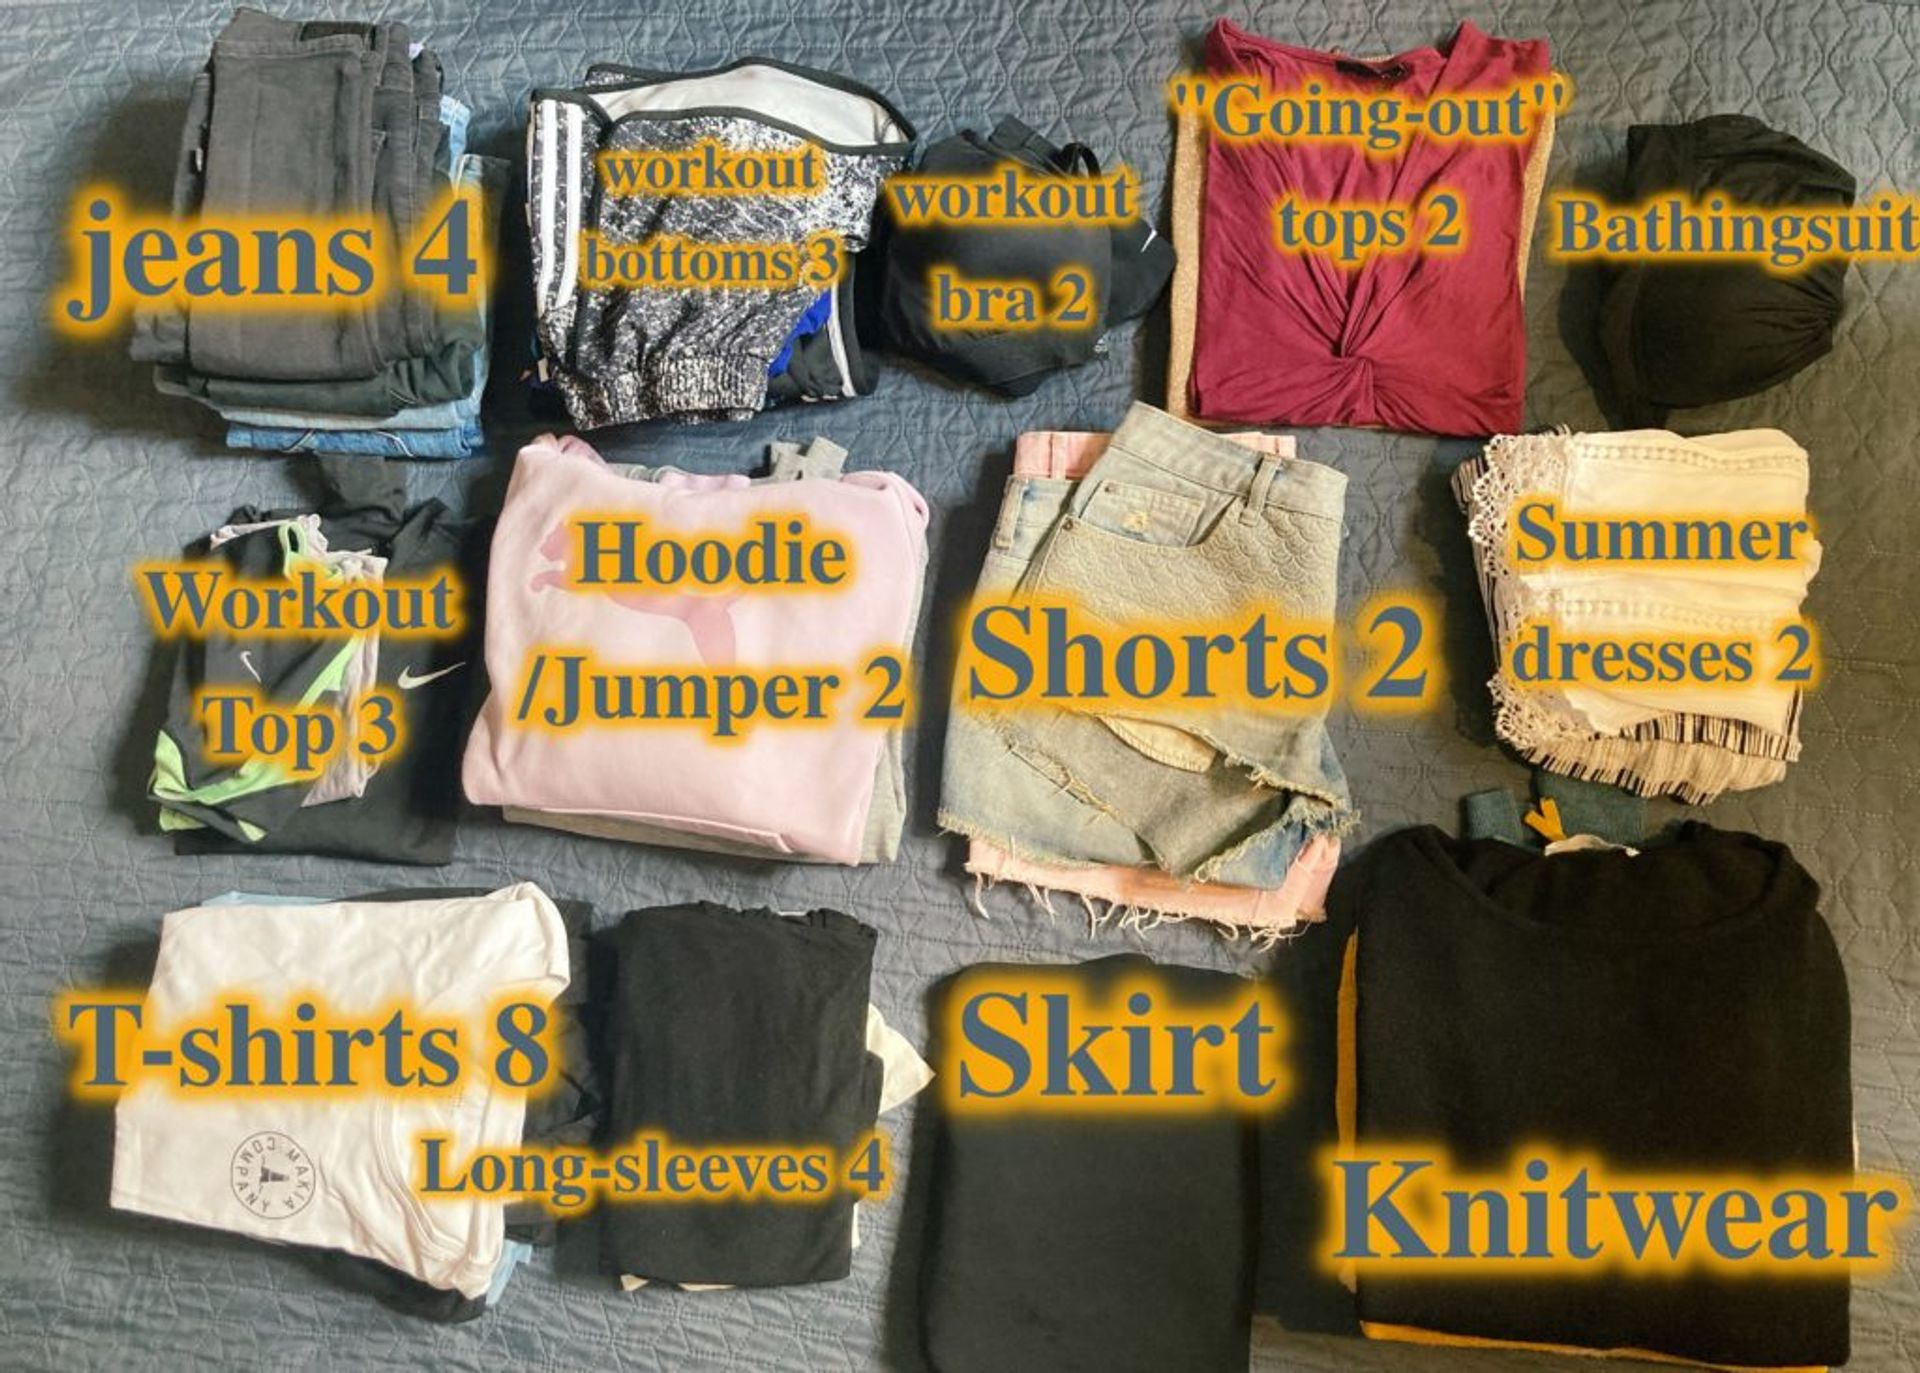 A mixture of different clothing including jeans, knitwear, dresses, shorts.